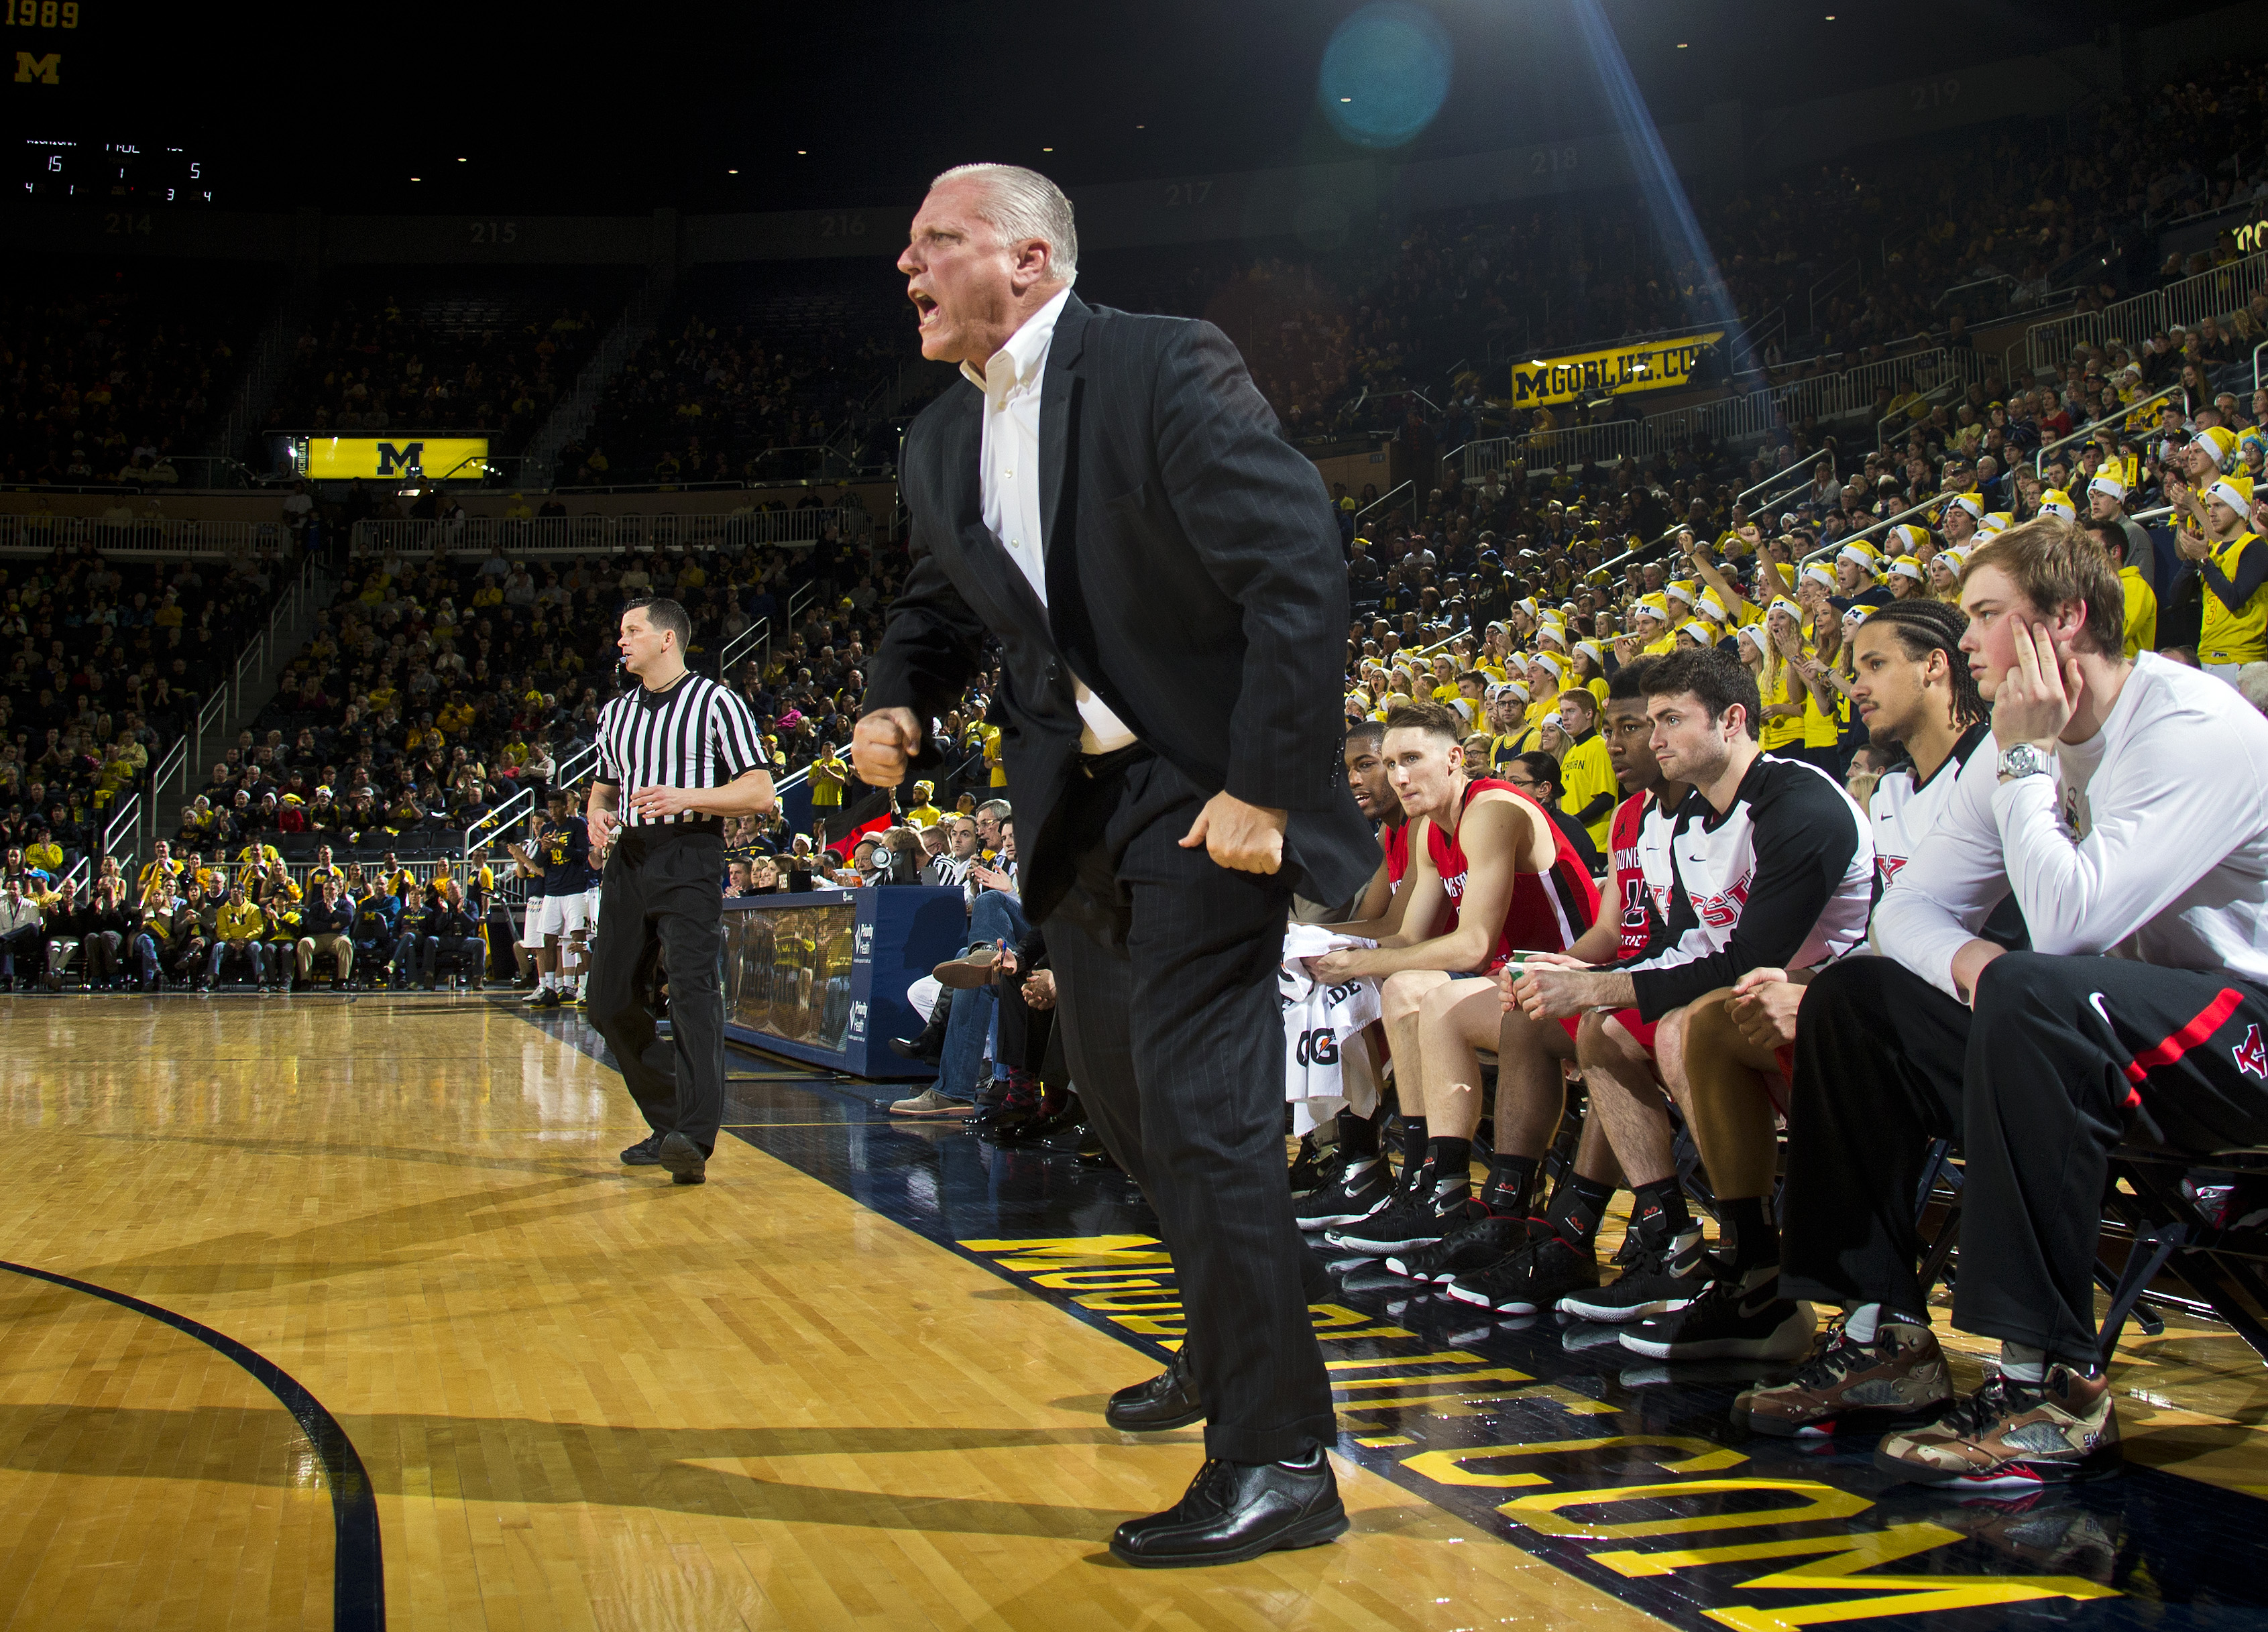 Youngstown State head coach Jerry Slocum reacts courtside in the first half of an NCAA college basketball game against Michigan in Ann Arbor, Mich., Saturday, Dec. 19, 2015. (AP Photo/Tony Ding)